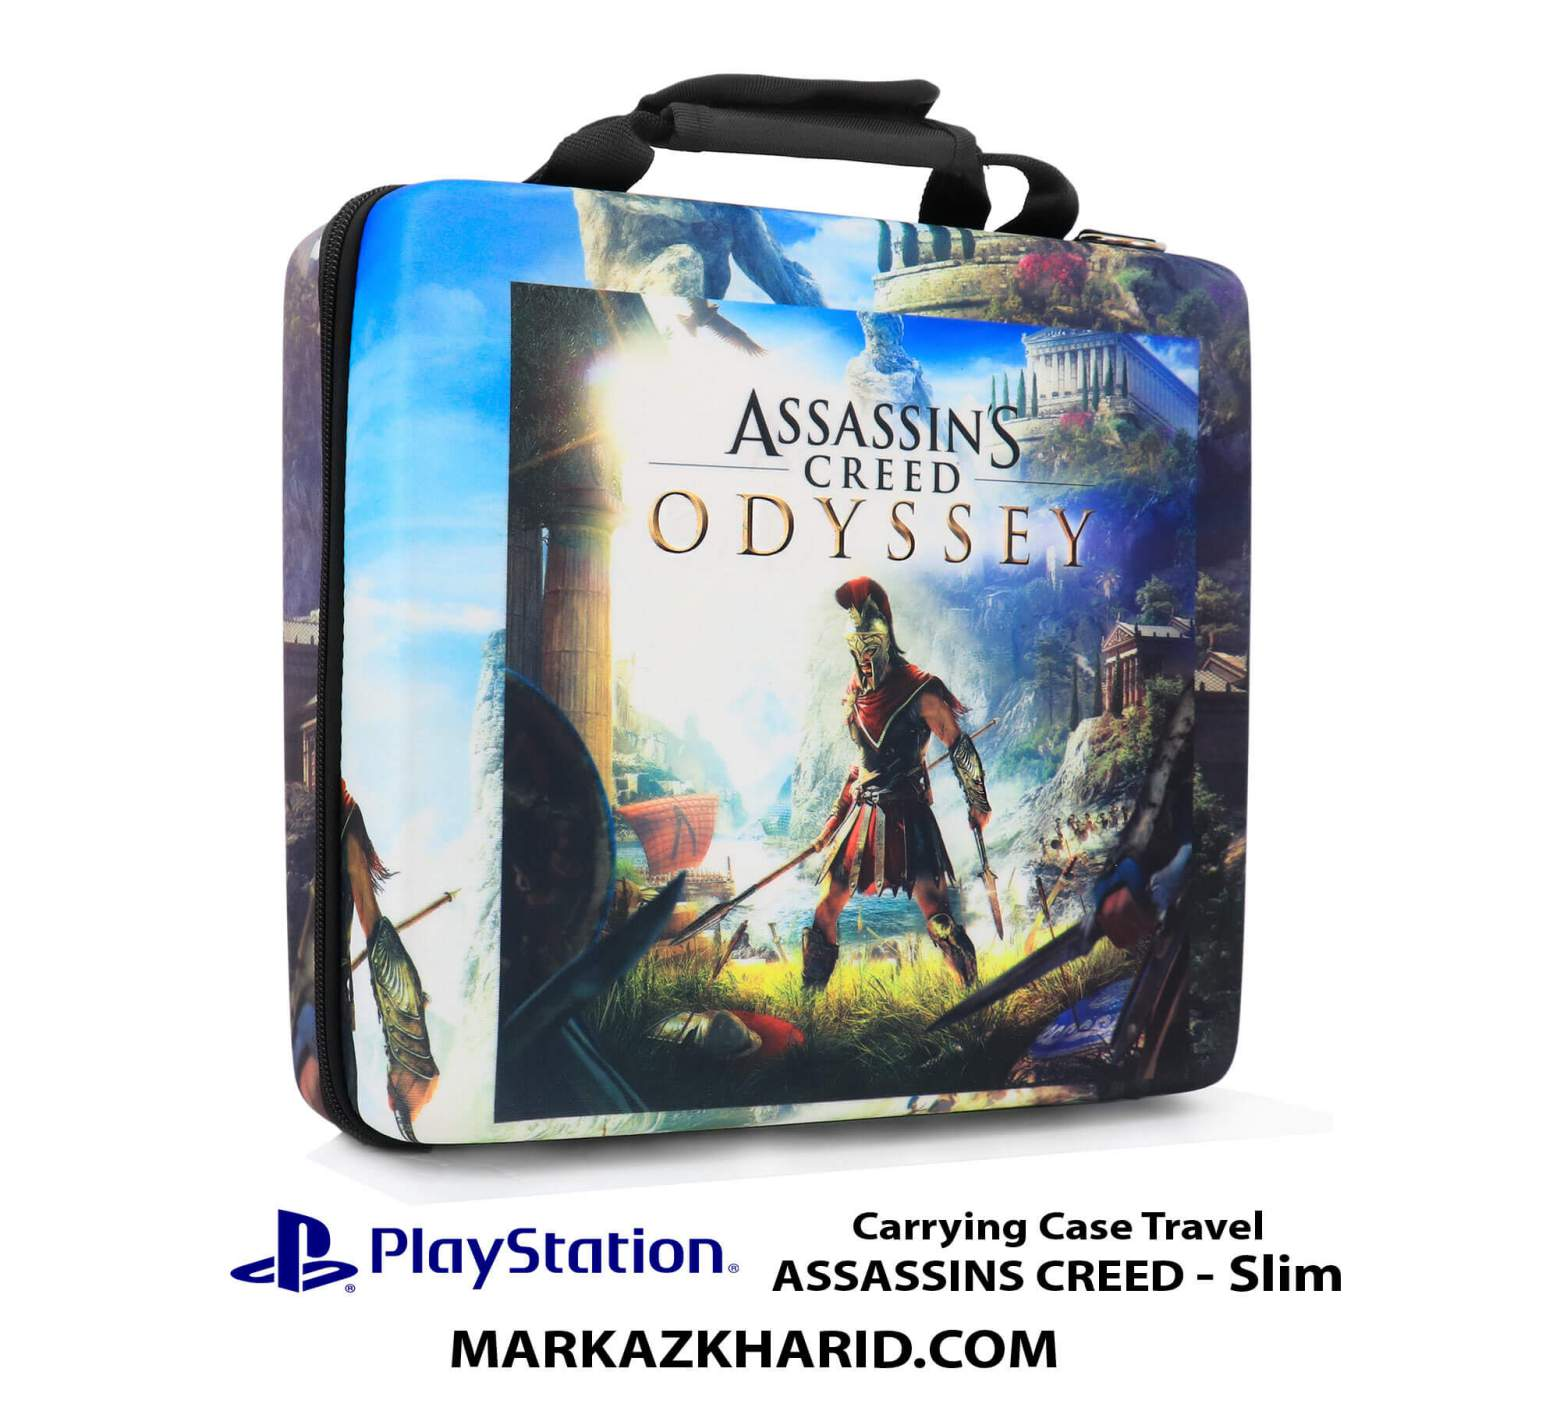 کیف ضدضربه پلی استیشن ۴ PlayStation 4 Slim Hard Case Travel Bag ASSASSINS